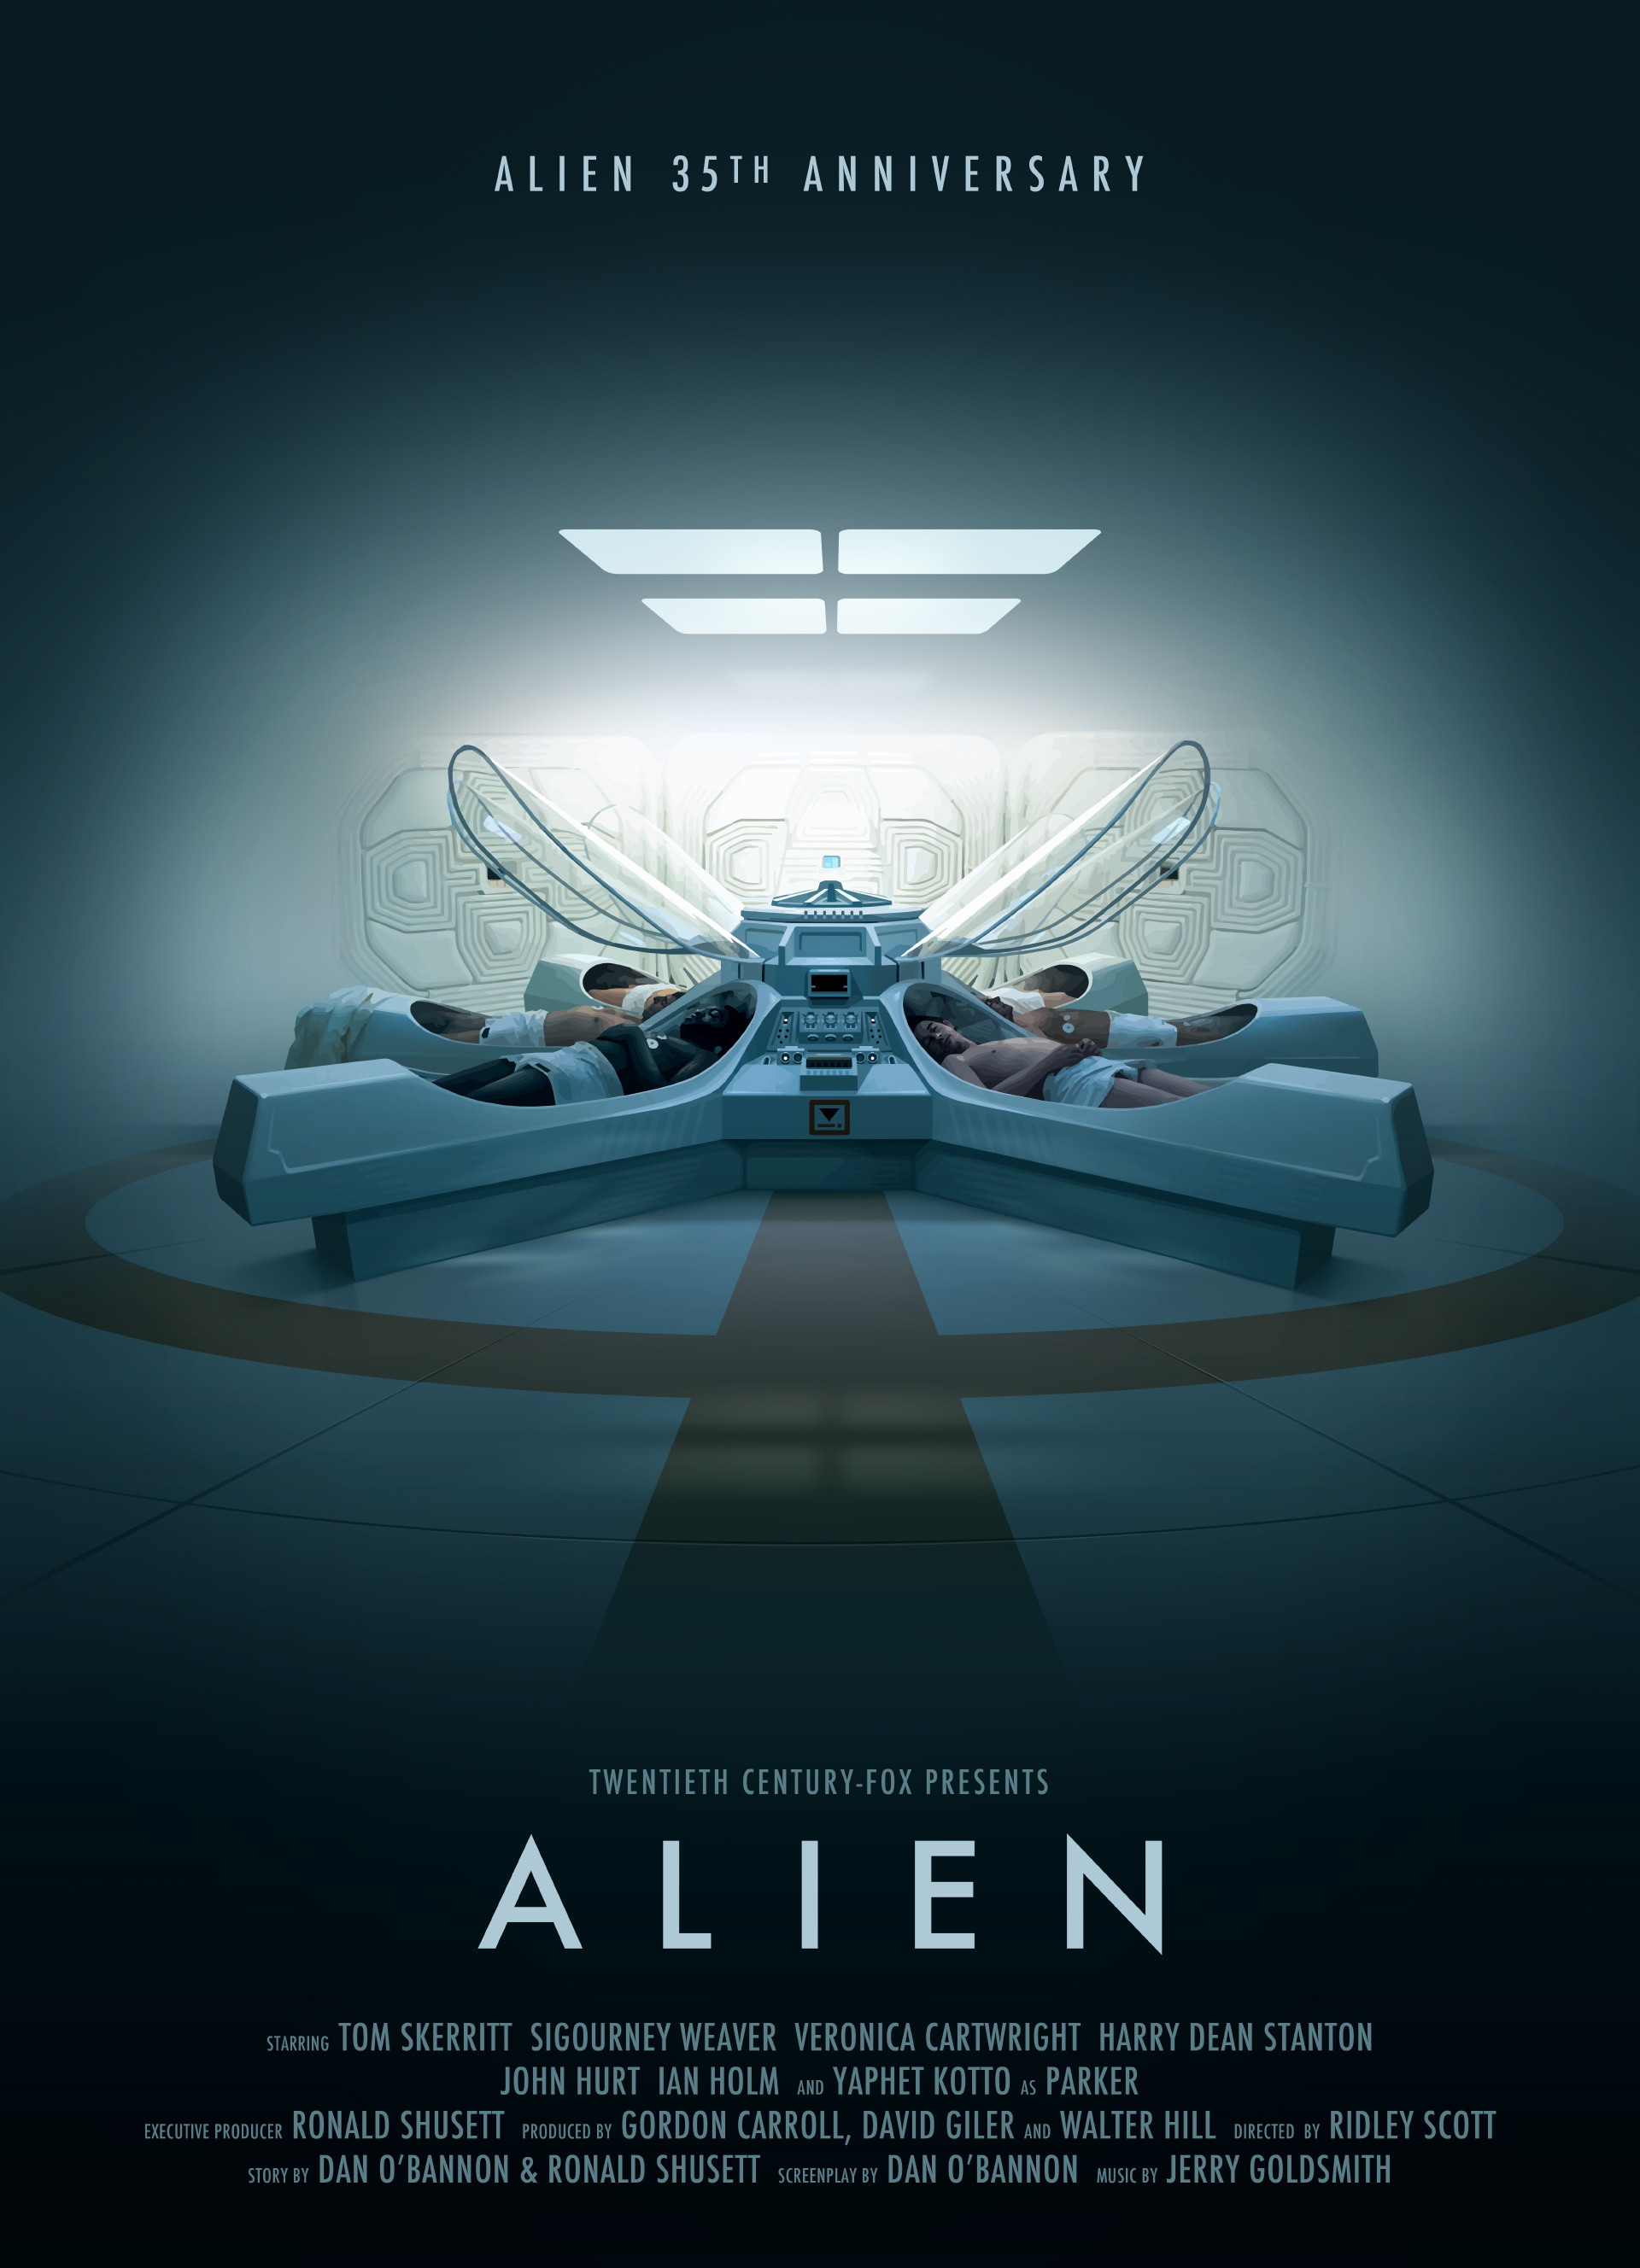 Alien 35th Anniversary Poster